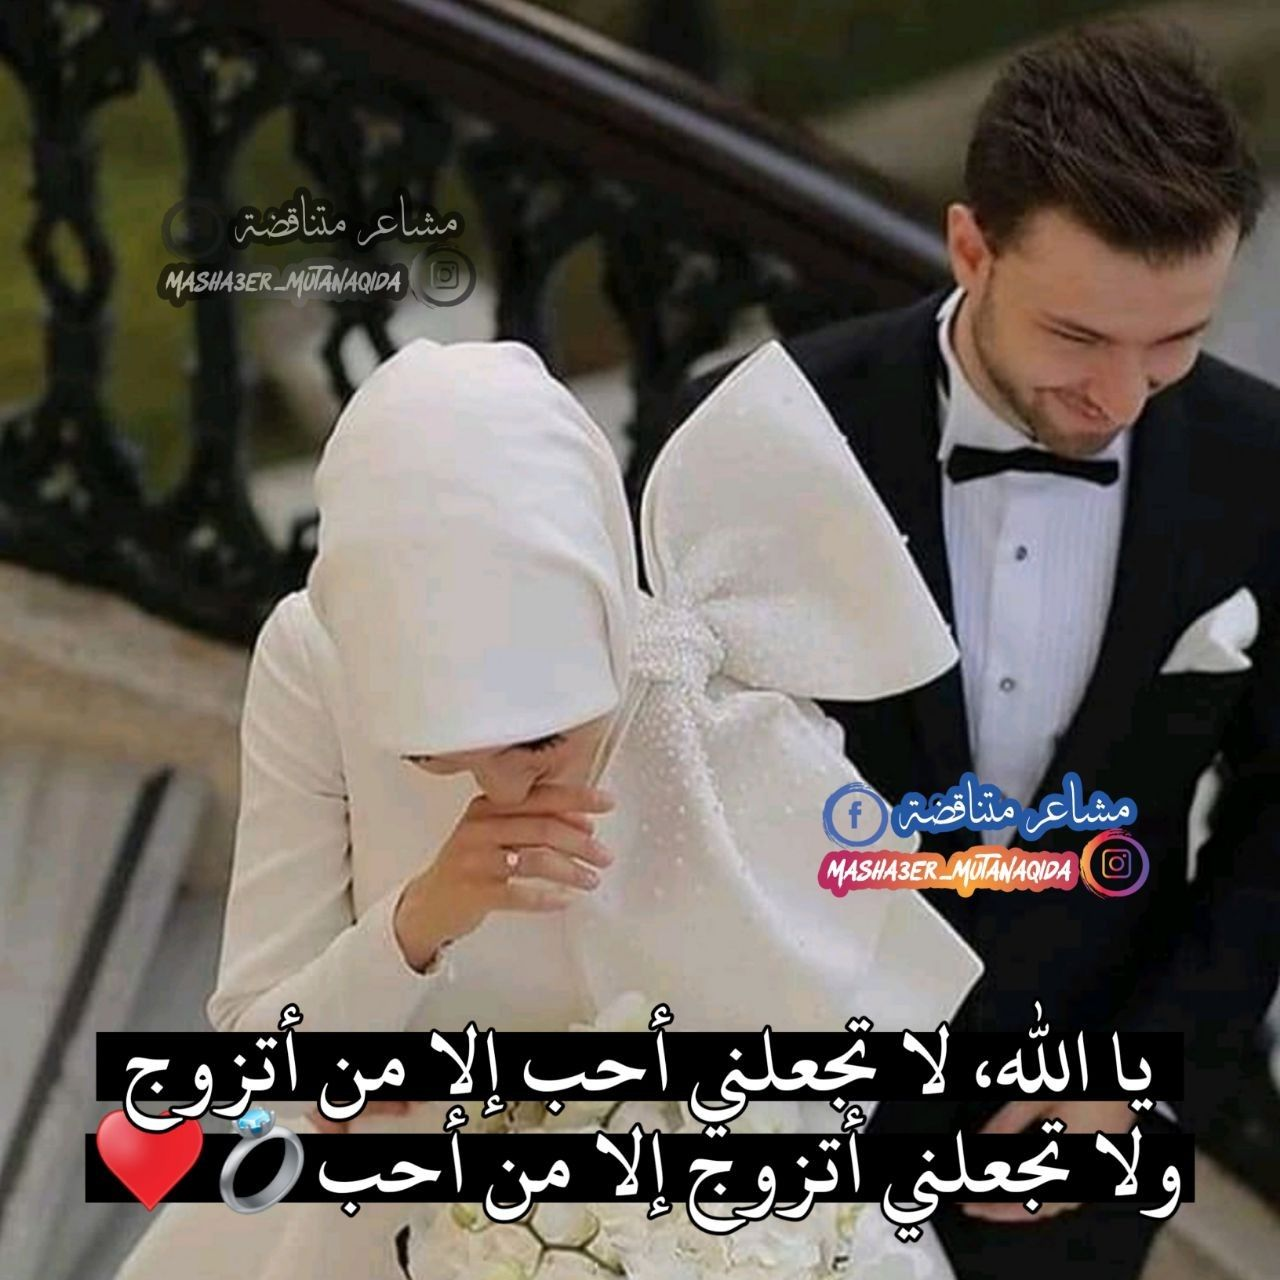 يا الله Cute Baby Boy Outfits Romantic Words Baby Boy Outfits